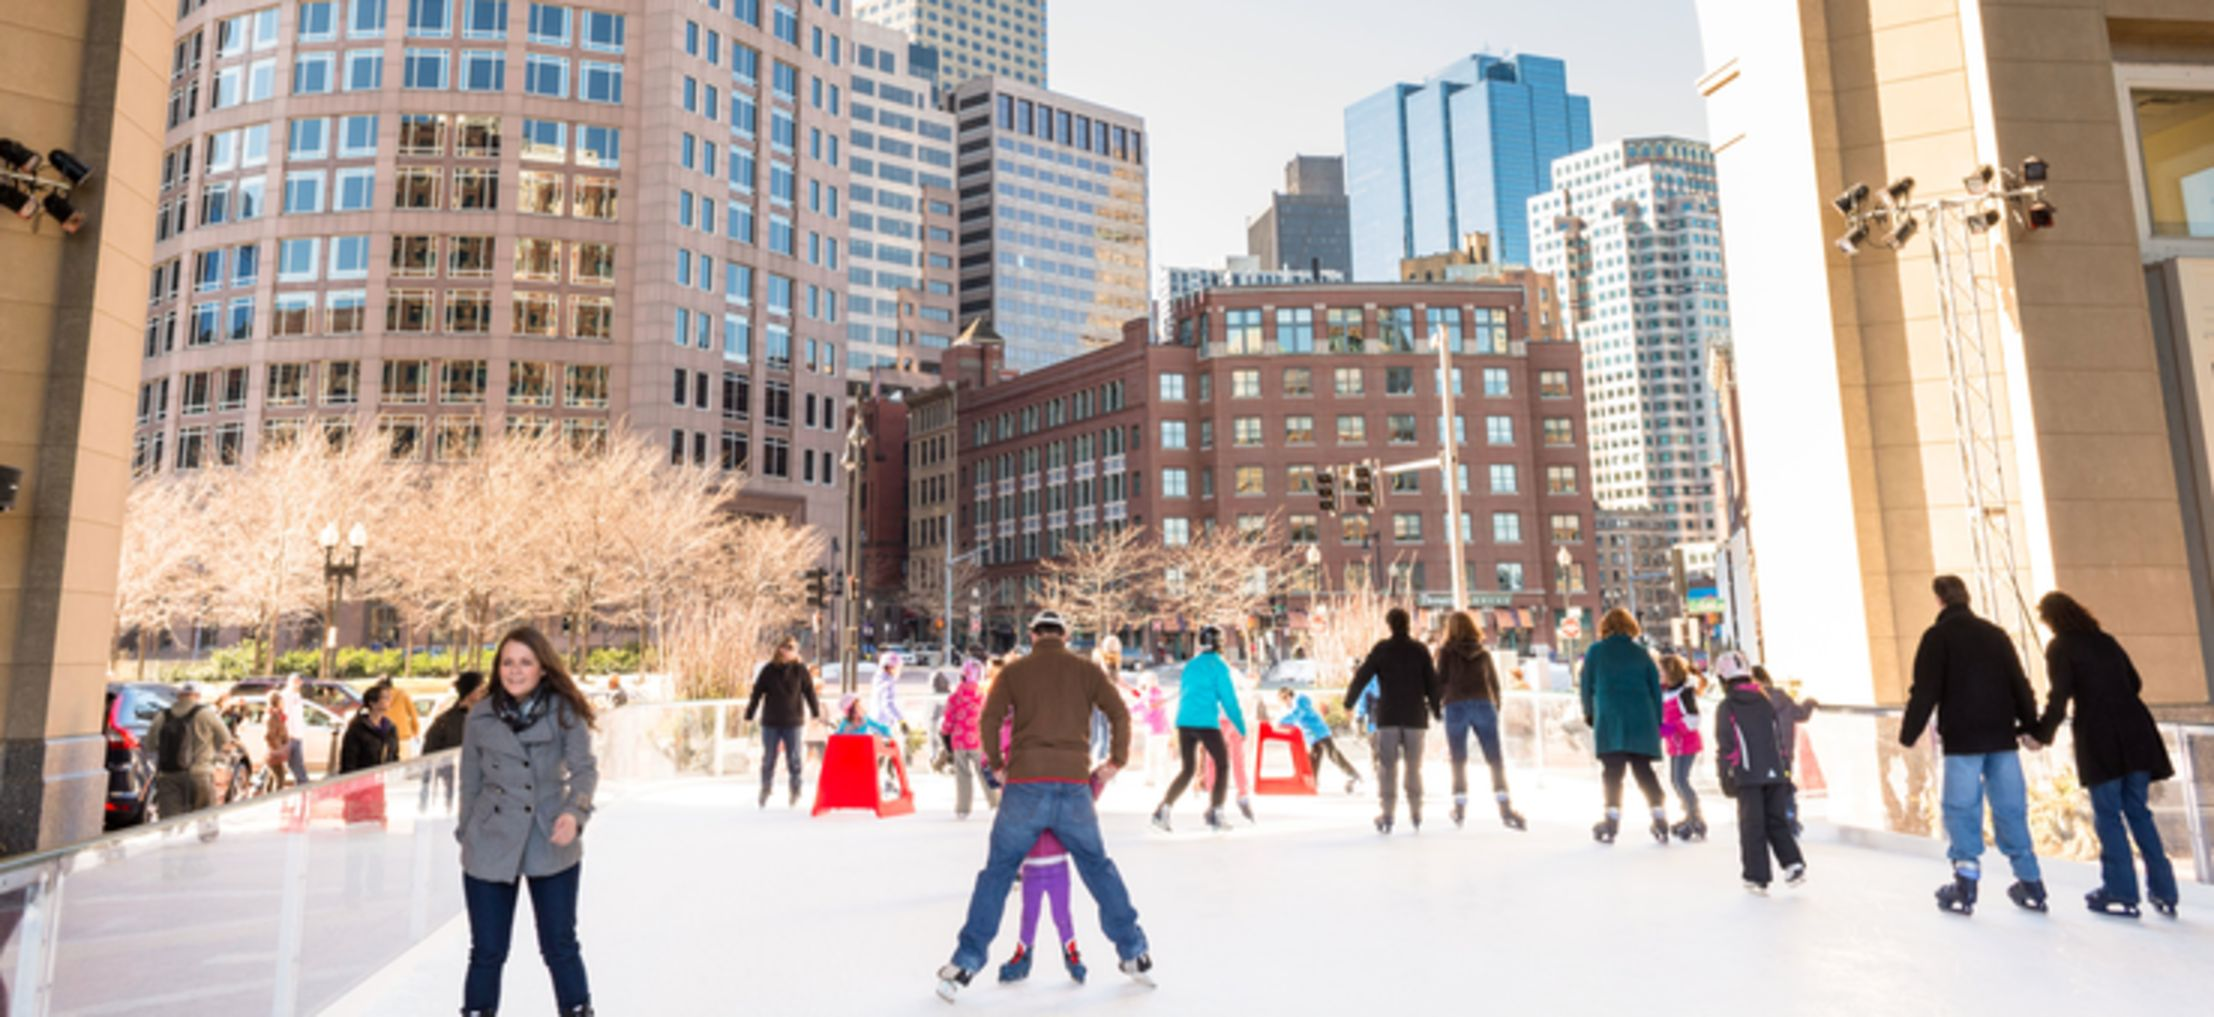 Ice Skating In Boston Wheretraveler